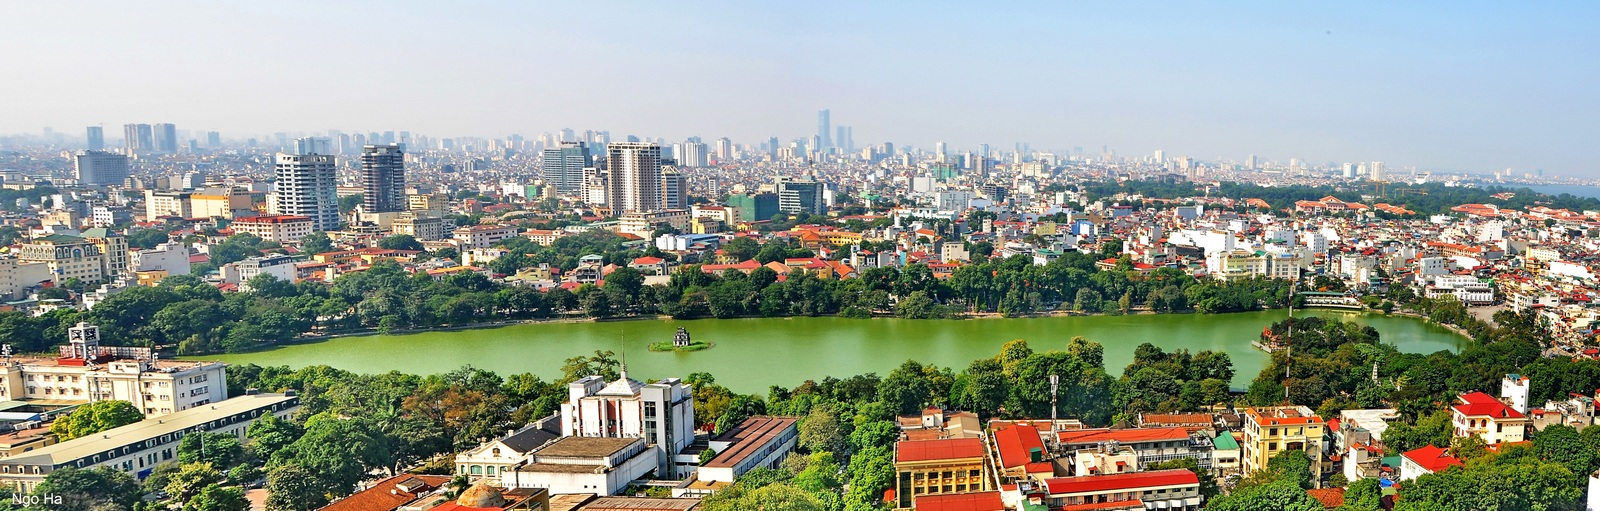 hanoi_the_sights